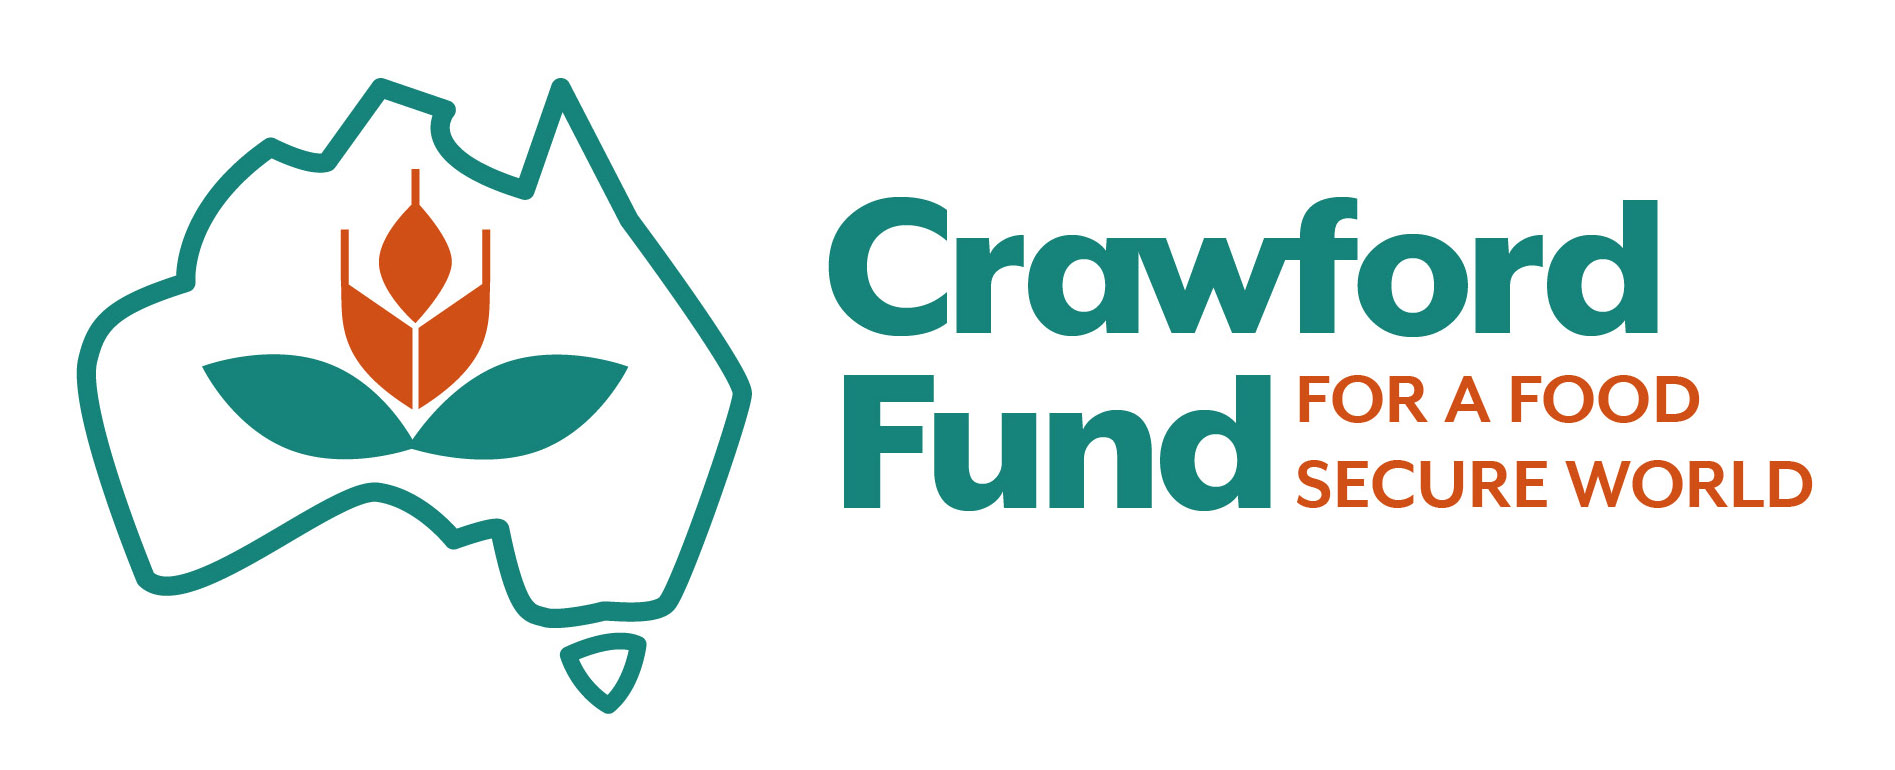 The Crawford Fund